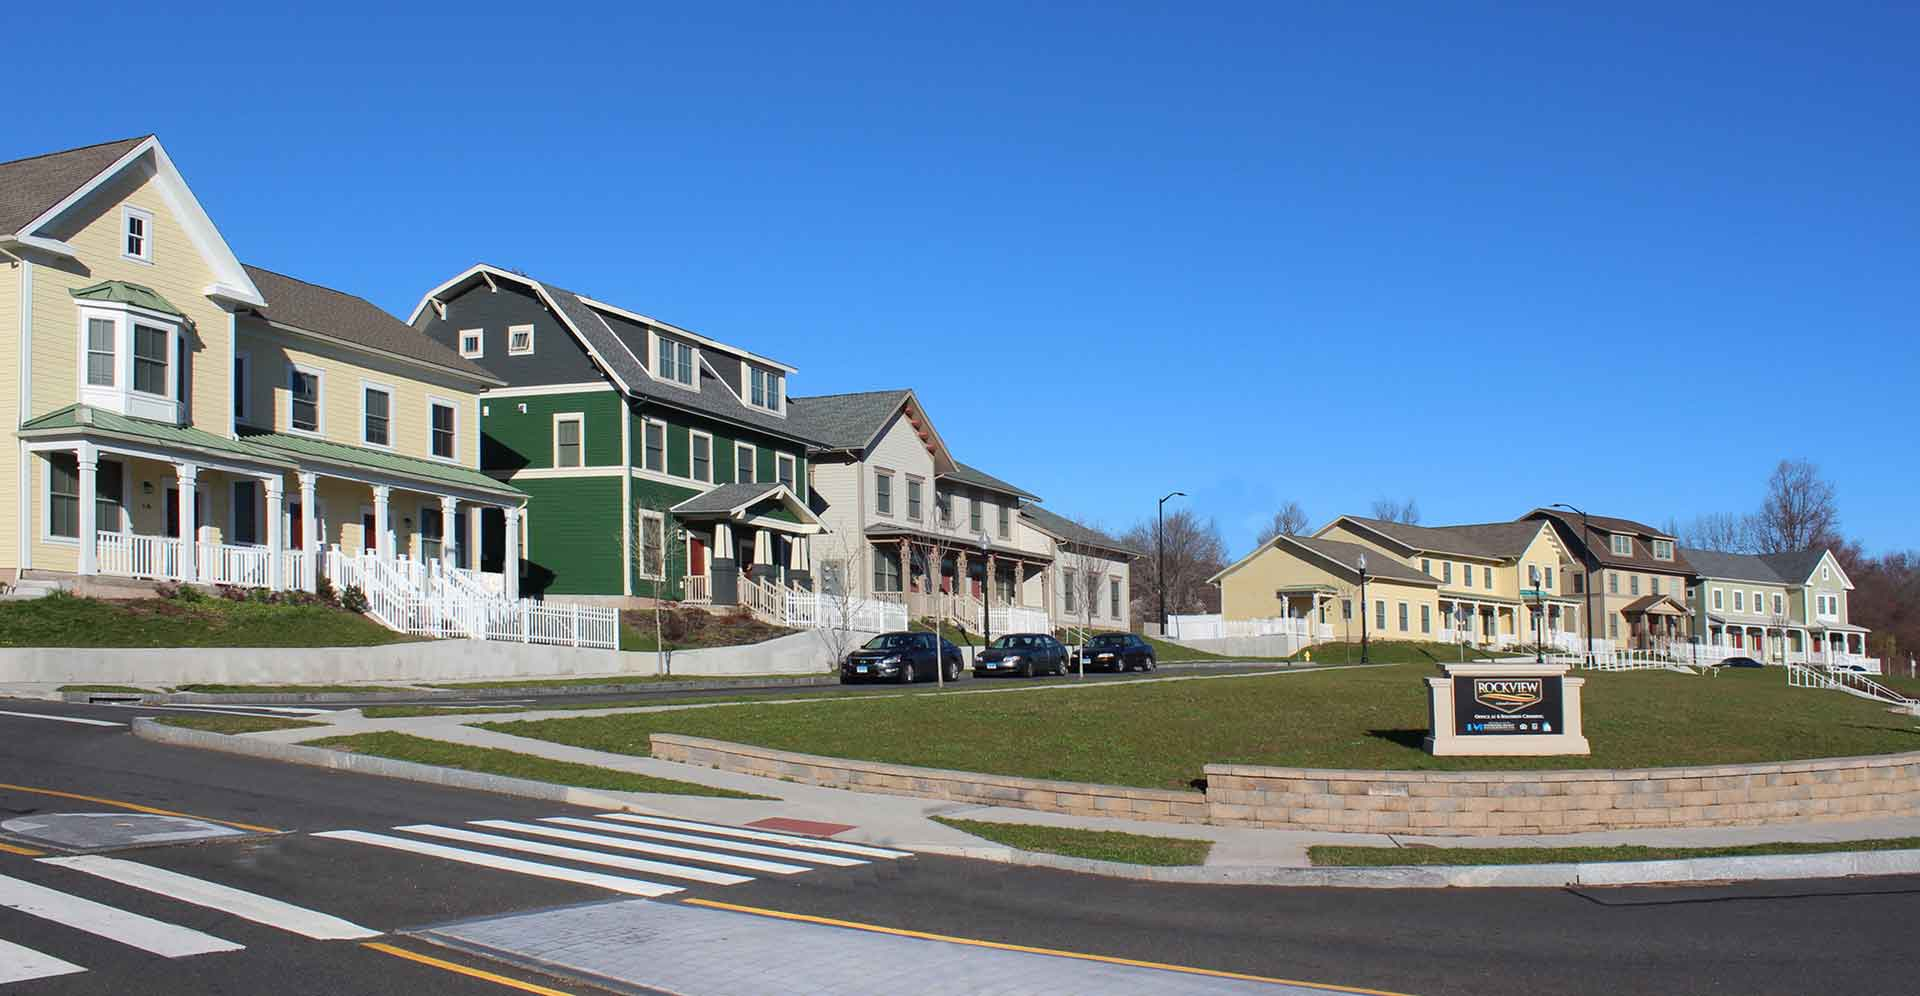 Brookside Housing Development